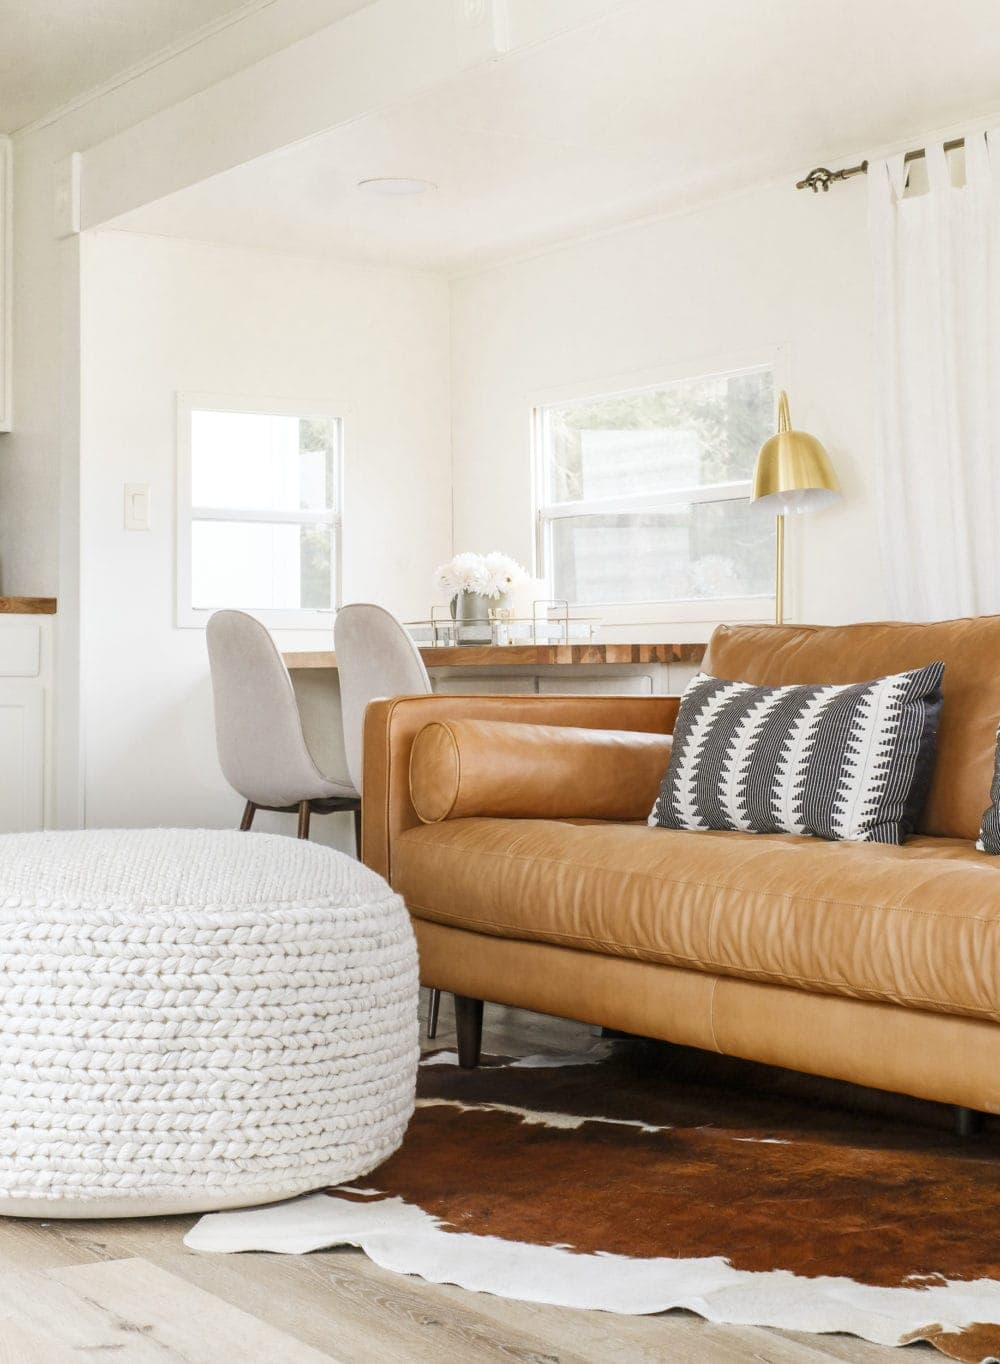 Large pouf in a small room in front of a brown leather couch